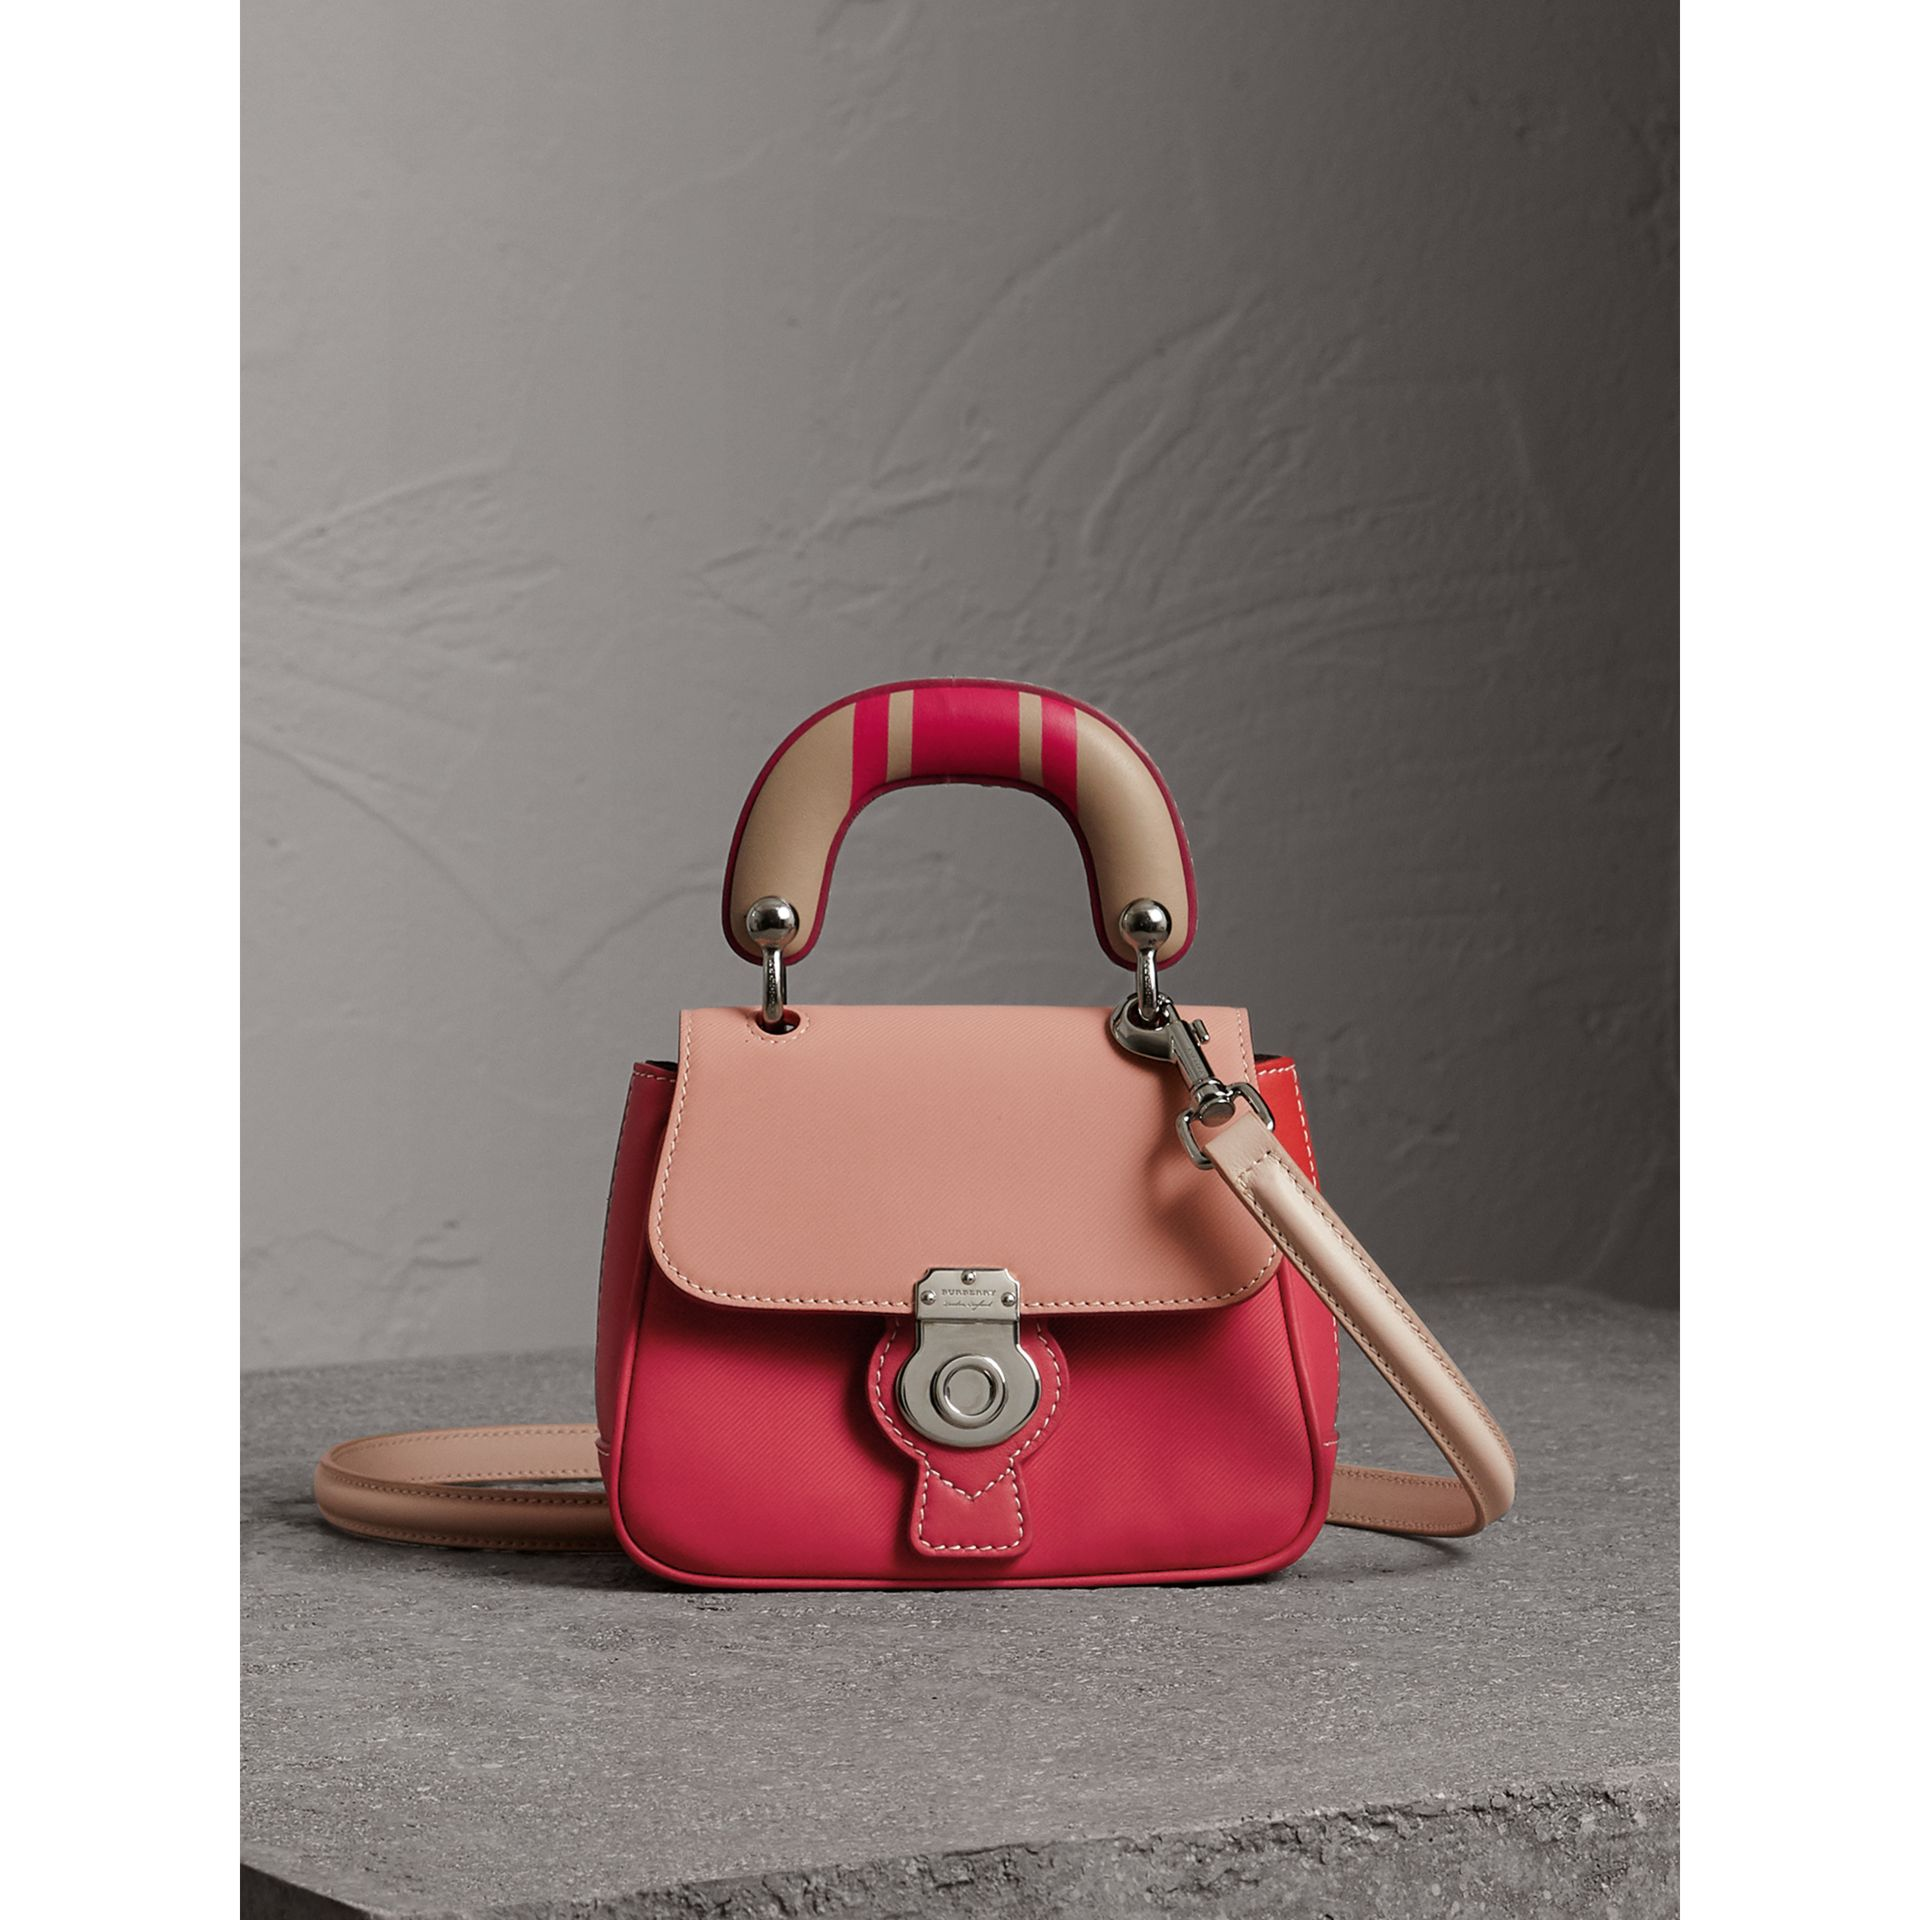 Burberry The Mini Dk88 Top Handle Bag With Geometric Print In Russet ... 29cc7a60fd